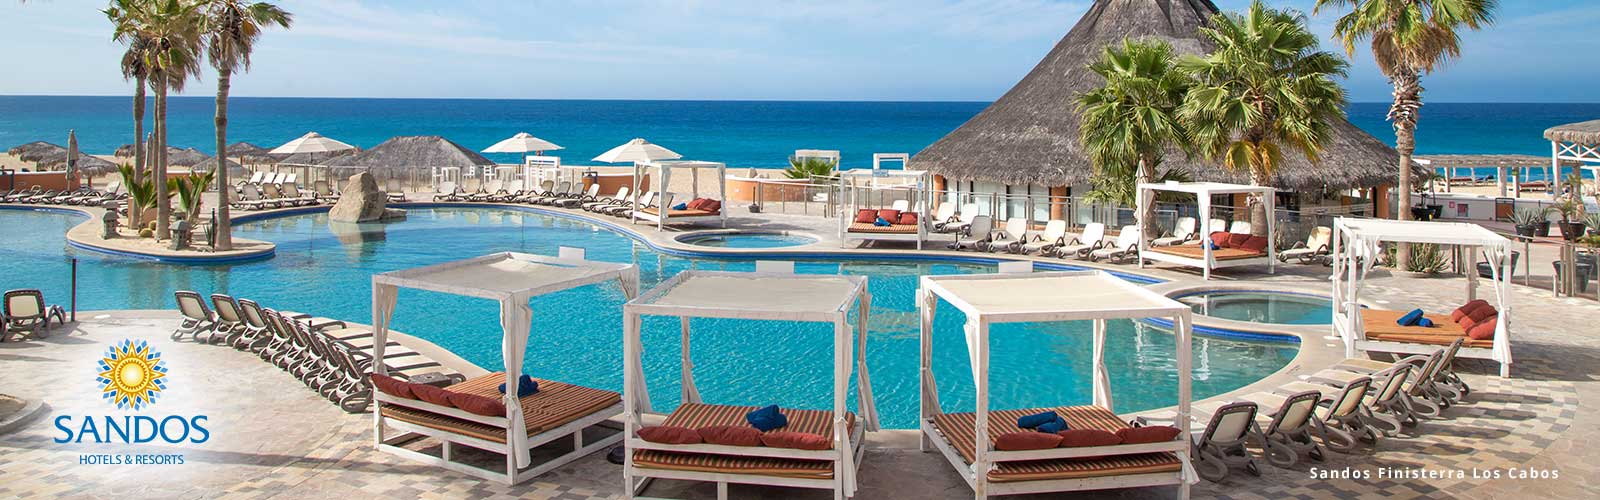 Hotel sandos cancun luxury experience resort marf travel vacation - The Sandos Hotels And Resorts Experience